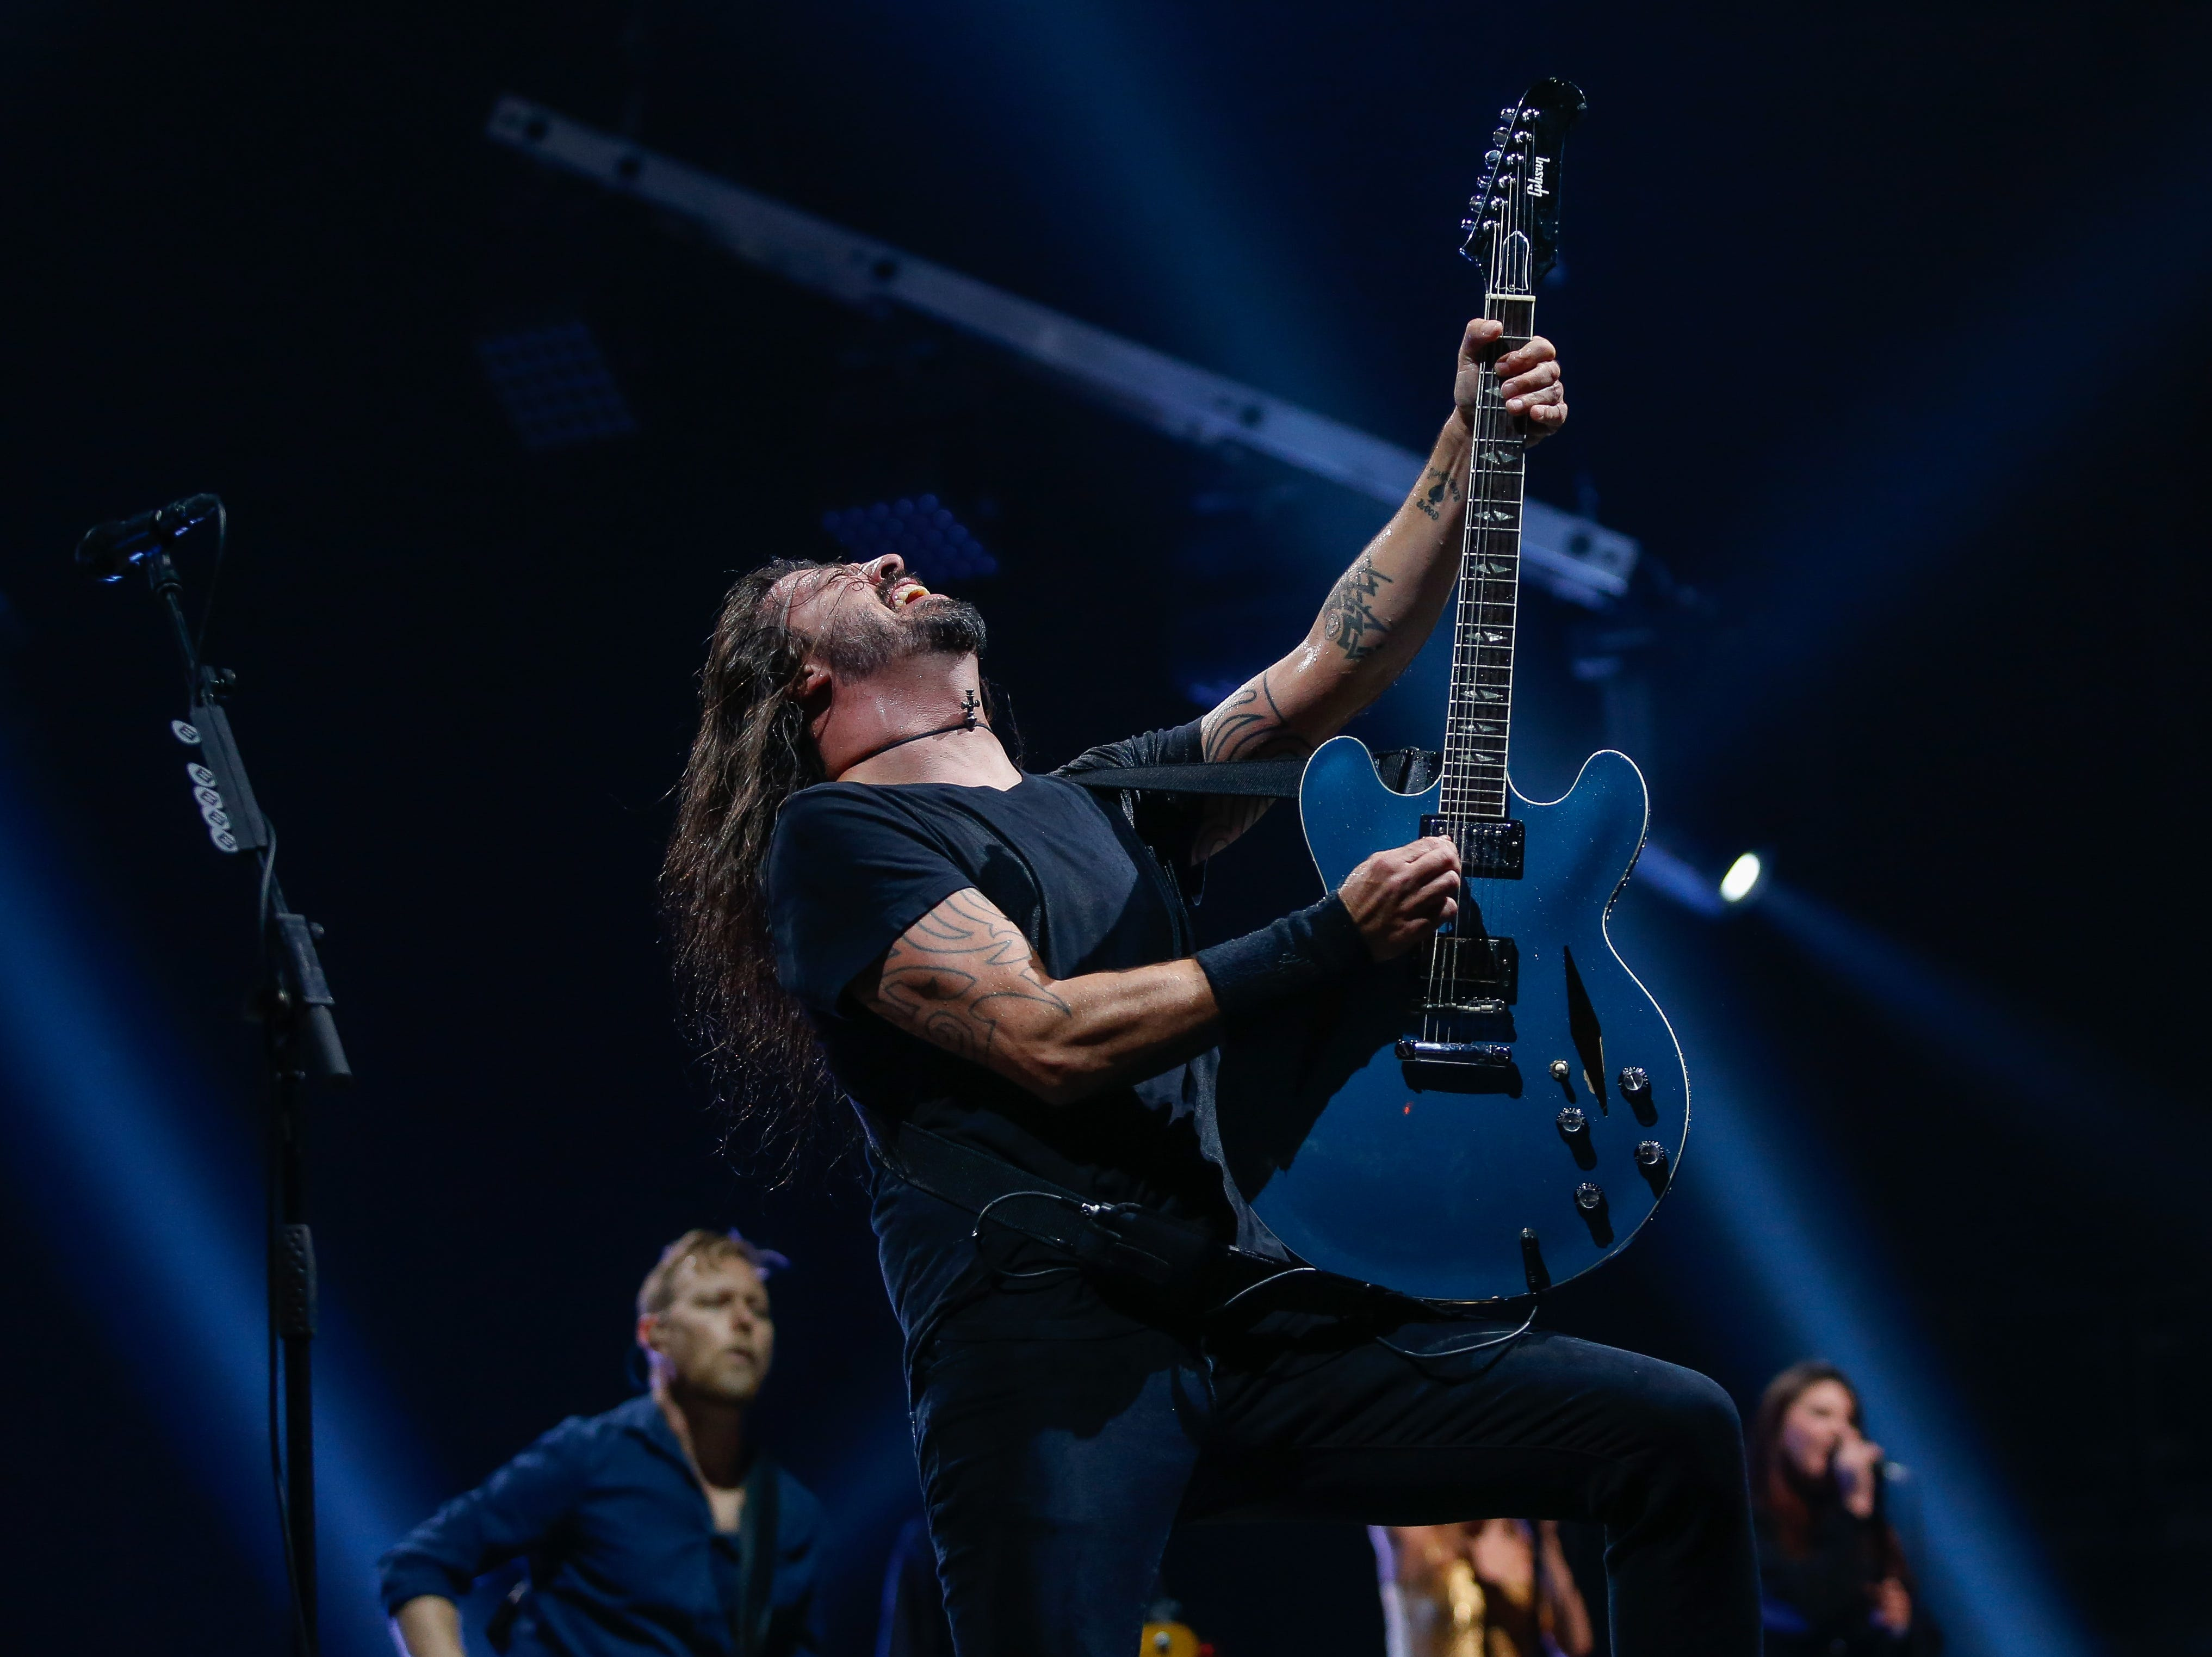 Dave Grohl (pictured) and the Foo Fighters performed for more than two hours for a packed Little Caesars Arena Monday night.